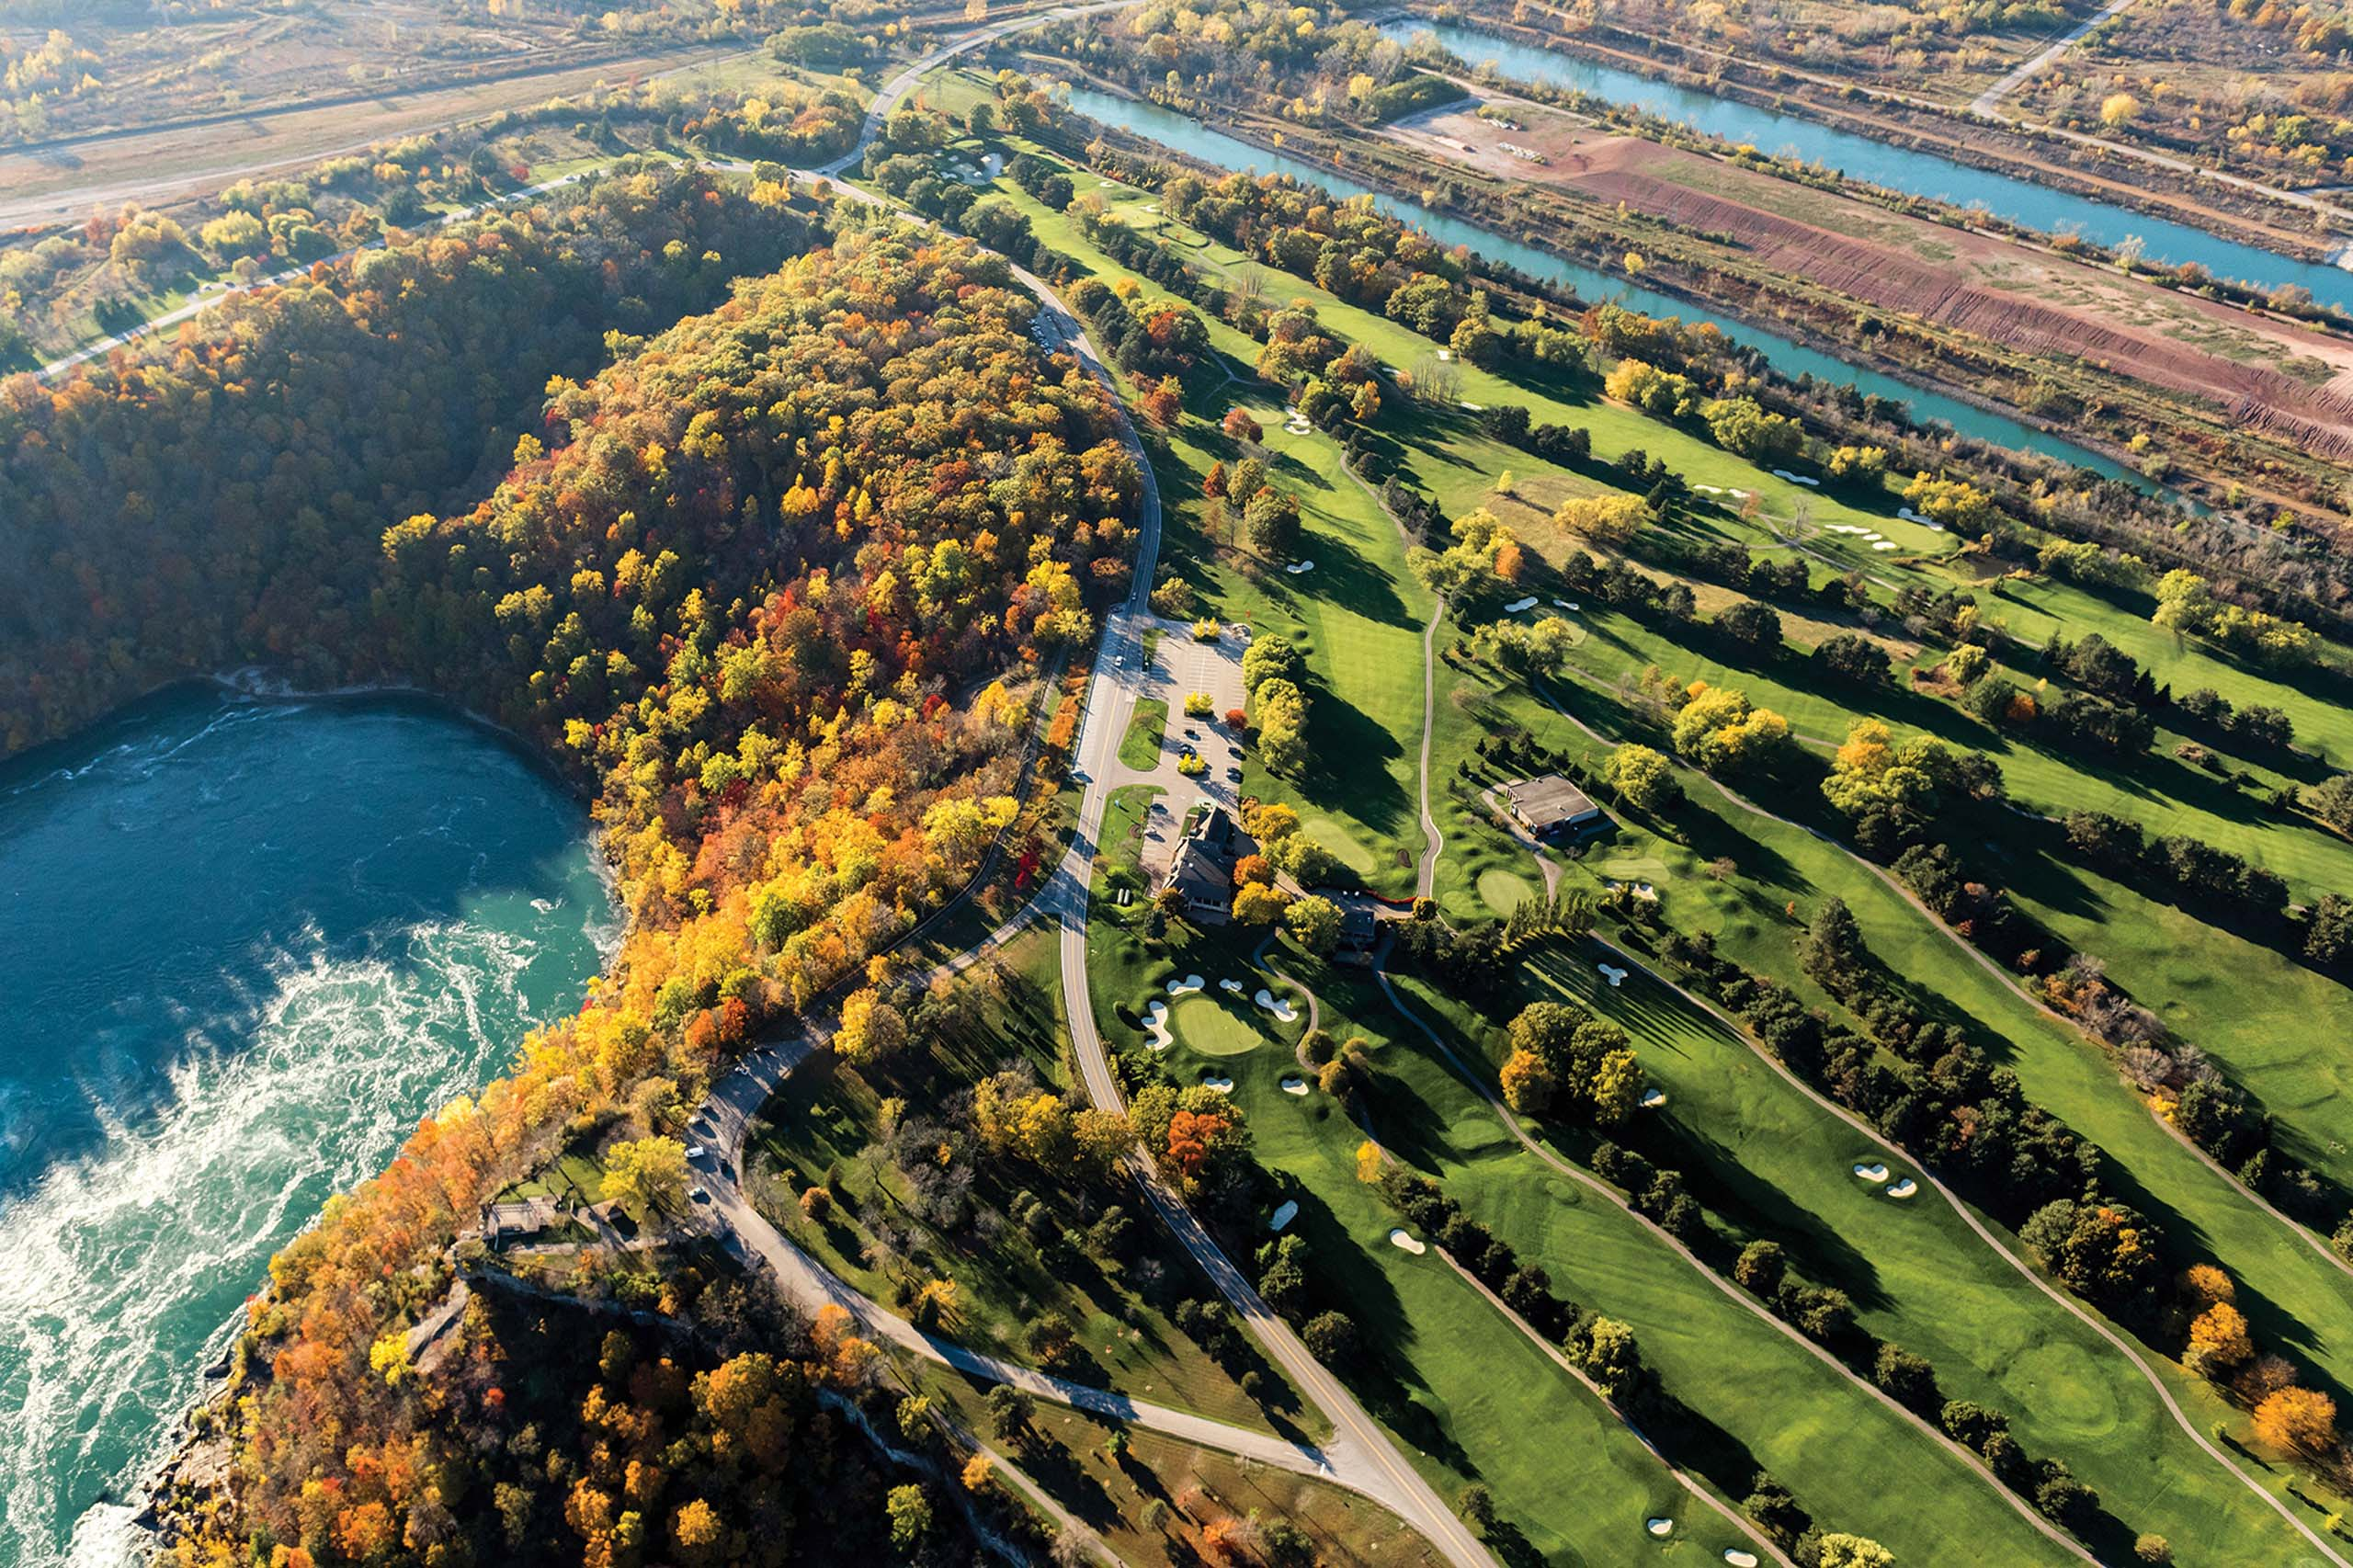 Niagara Parks Announces Phased Reopening Plan for Golf Courses